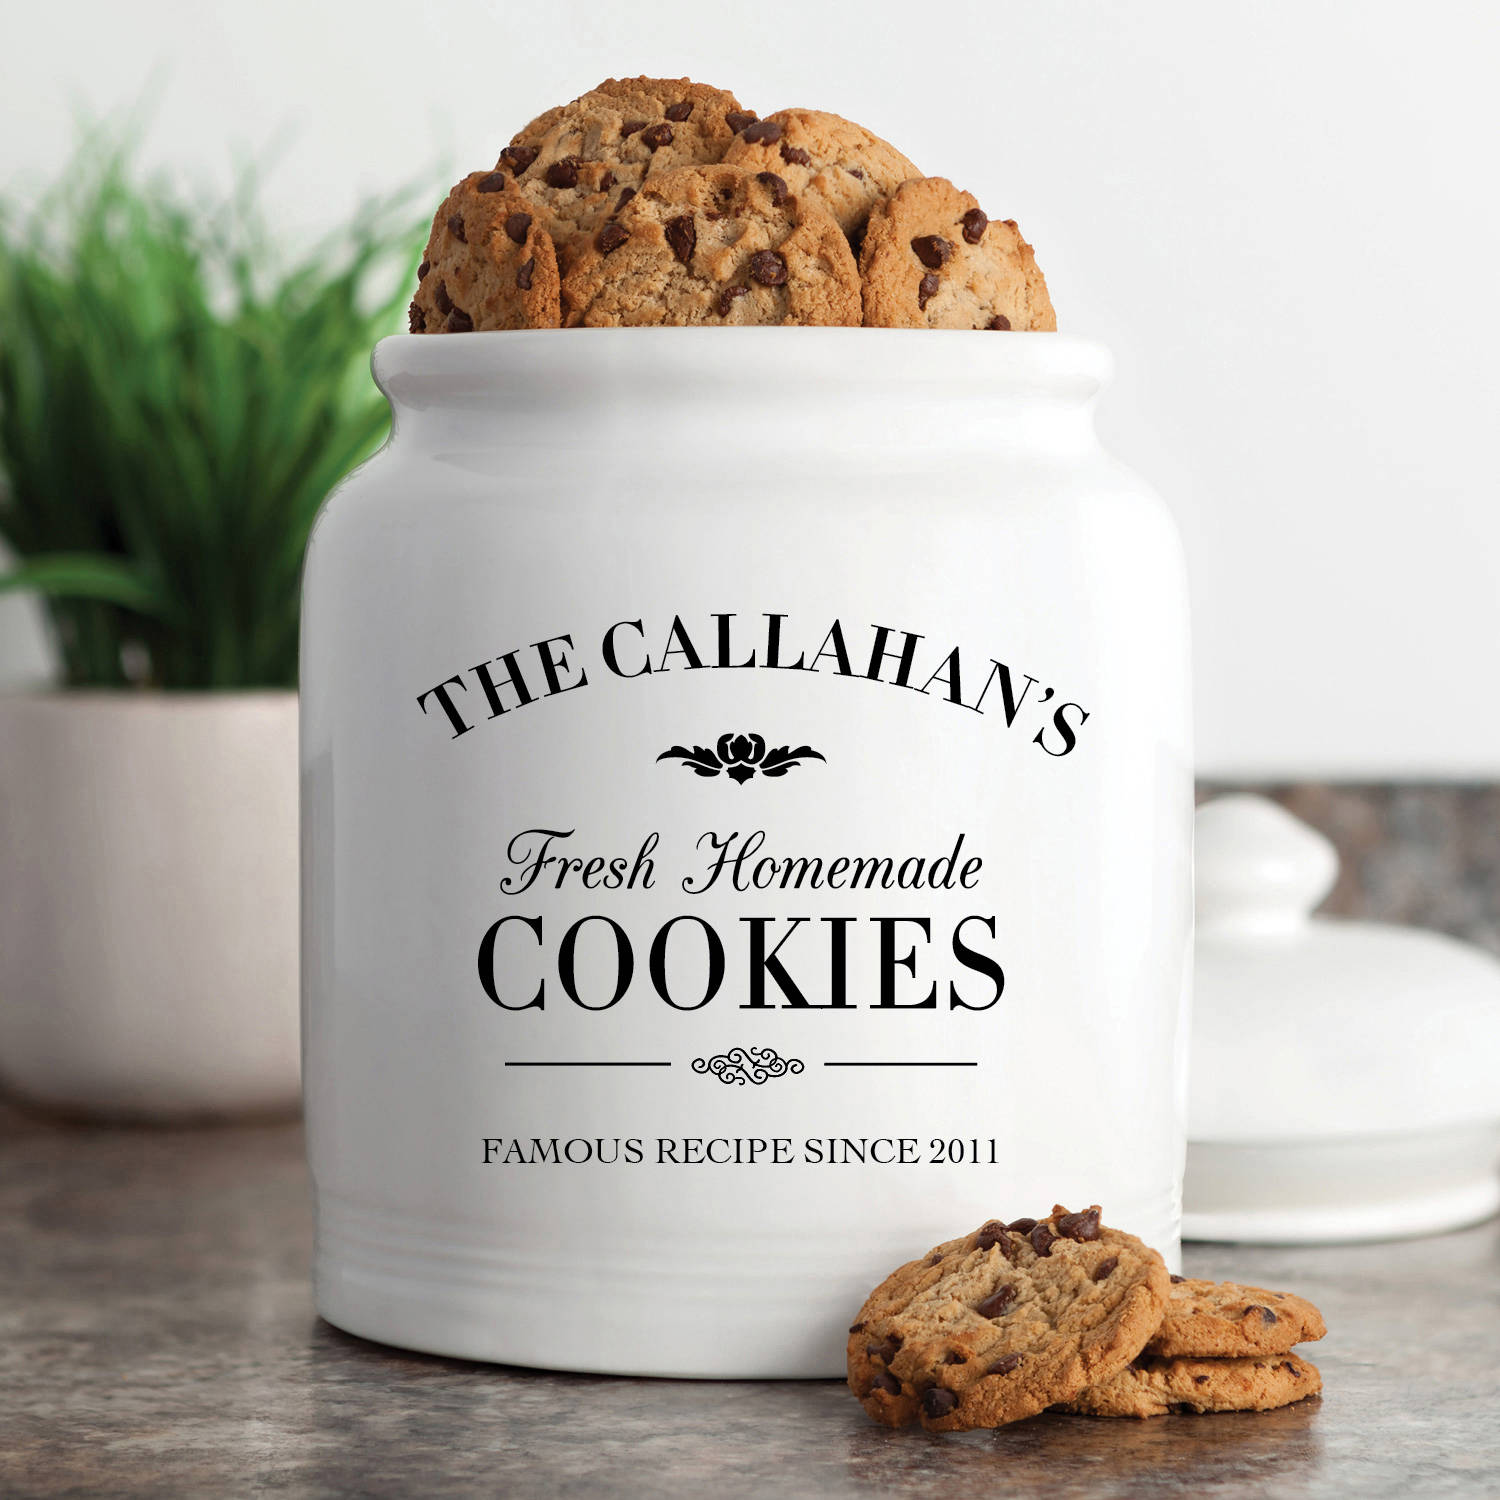 Personalized Cookie Jar Available In Multiple Styles - Walmart.com